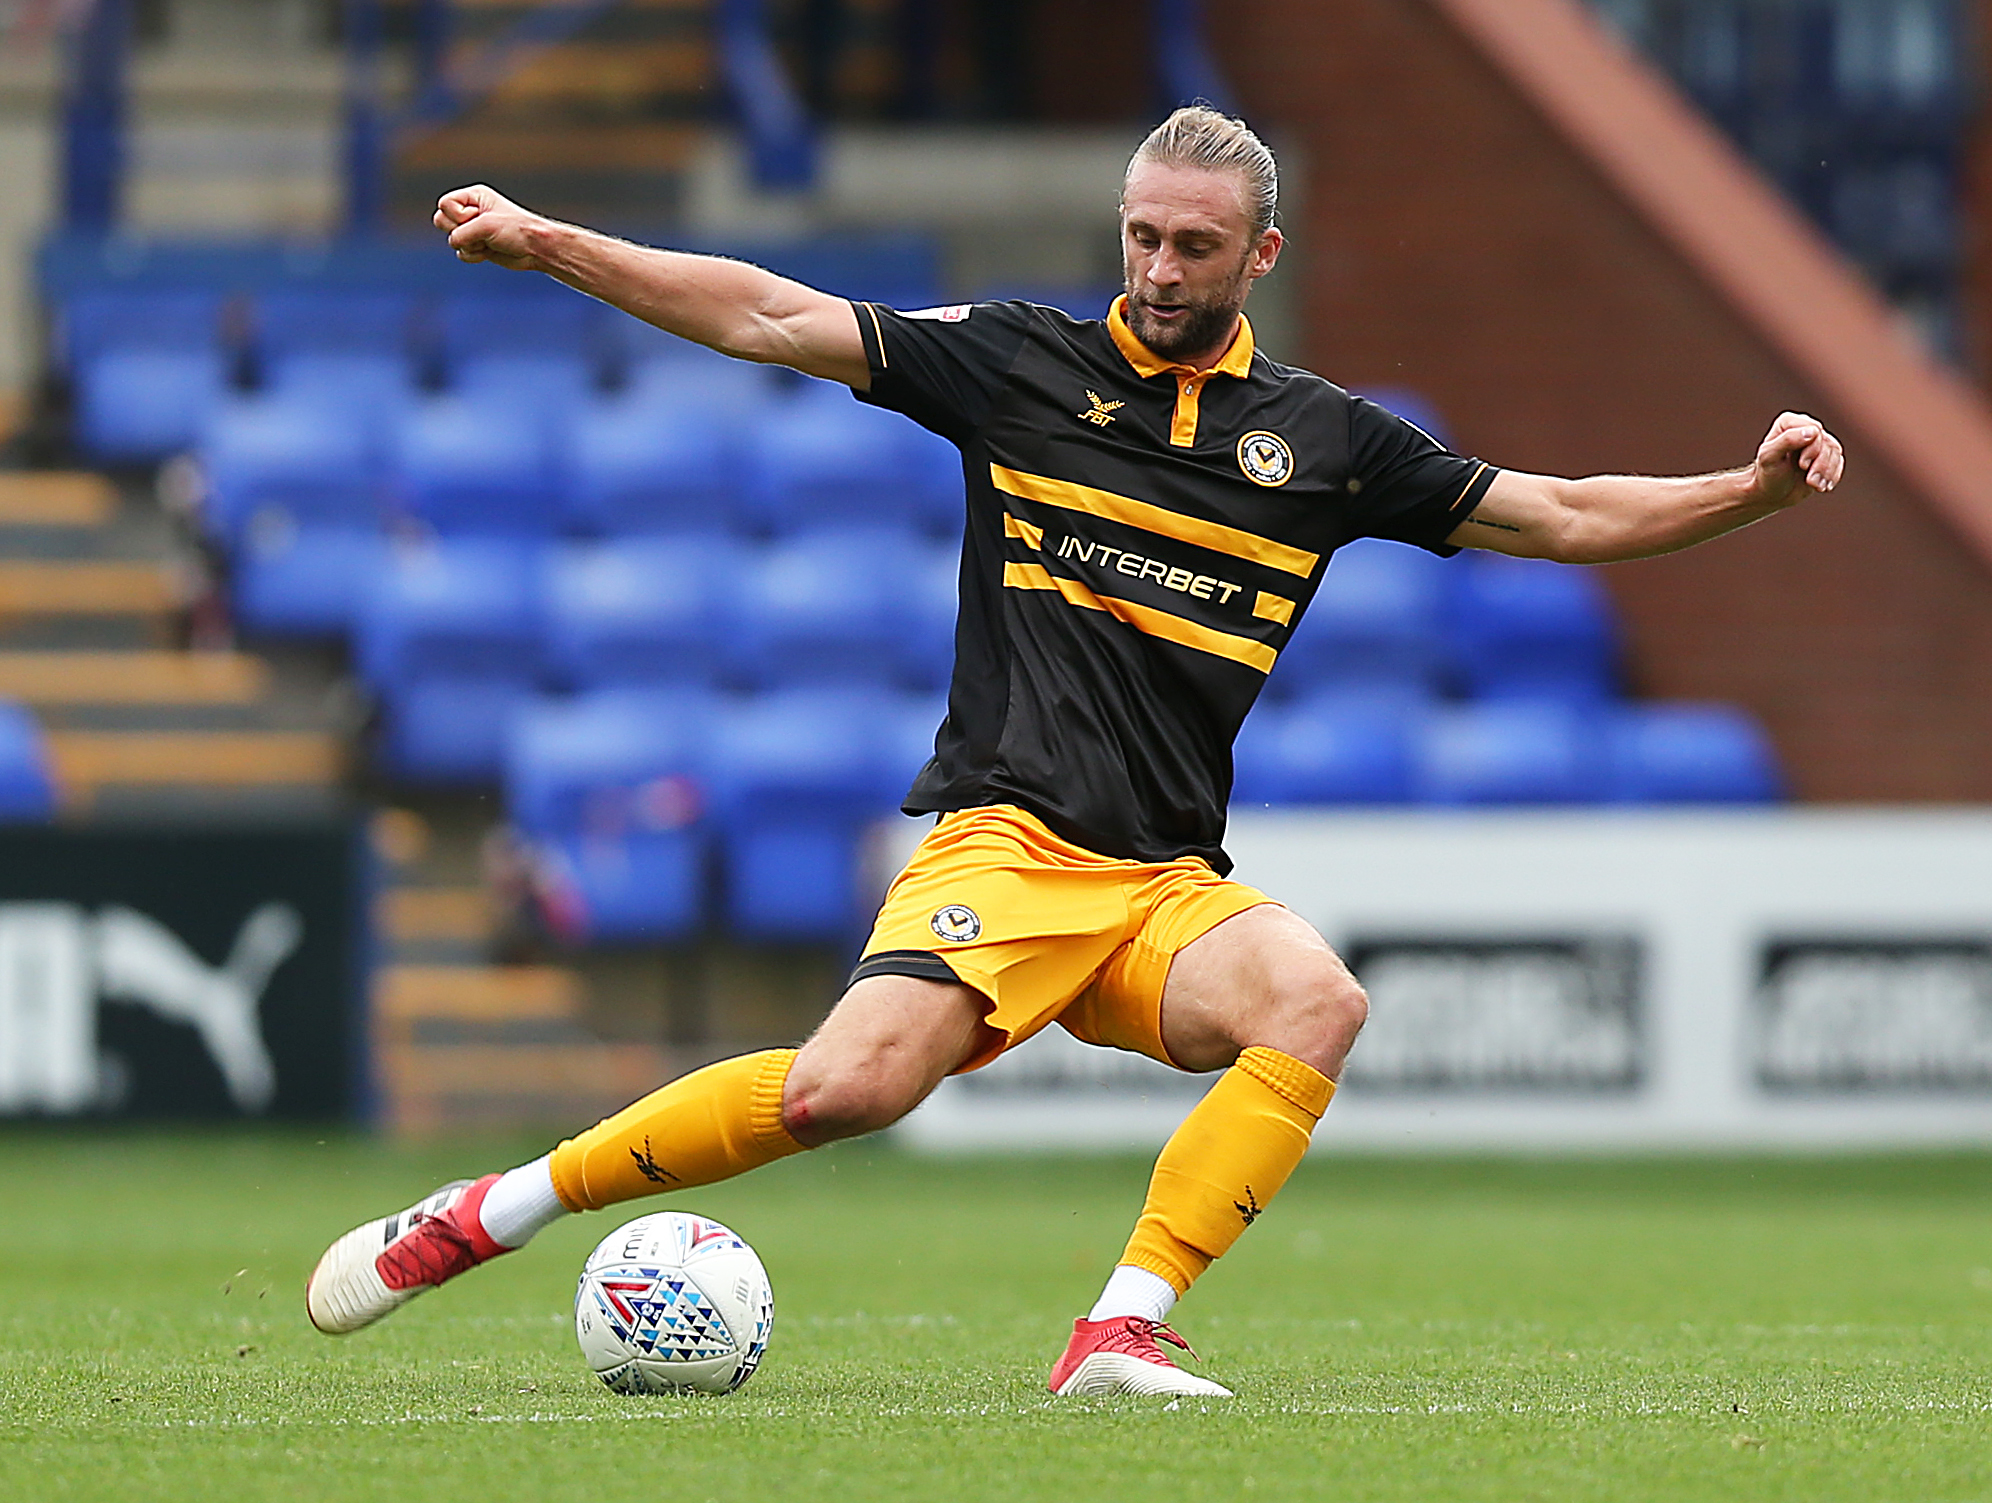 FOCUSED: Newport County defender Fraser Franks is targeting a top-three finish in League Two